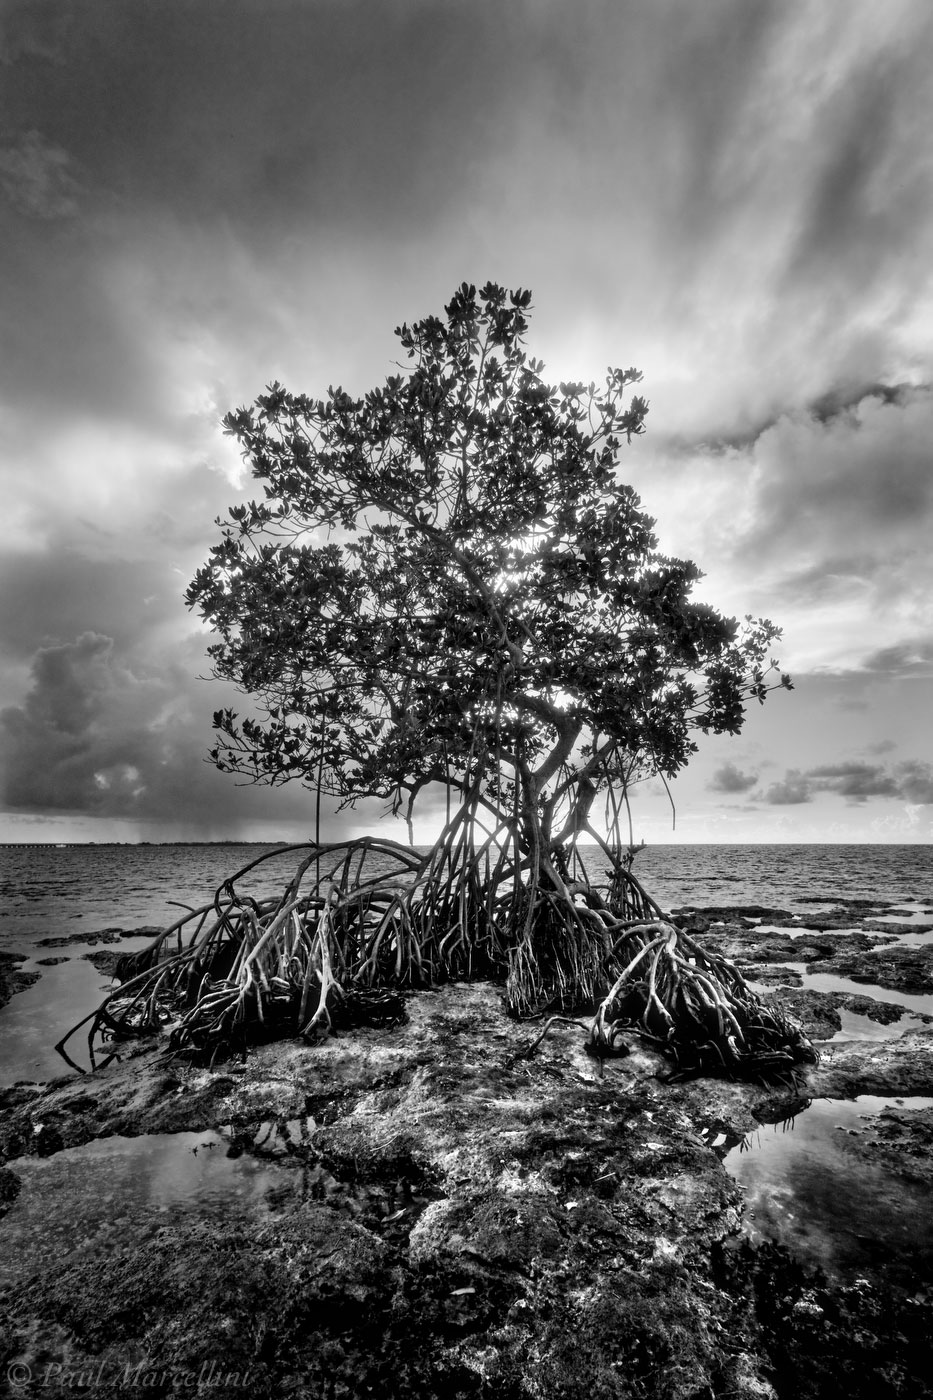 storm, big pine key, florida, mangrove, keys, florida keys, south florida, nature, photography, photo